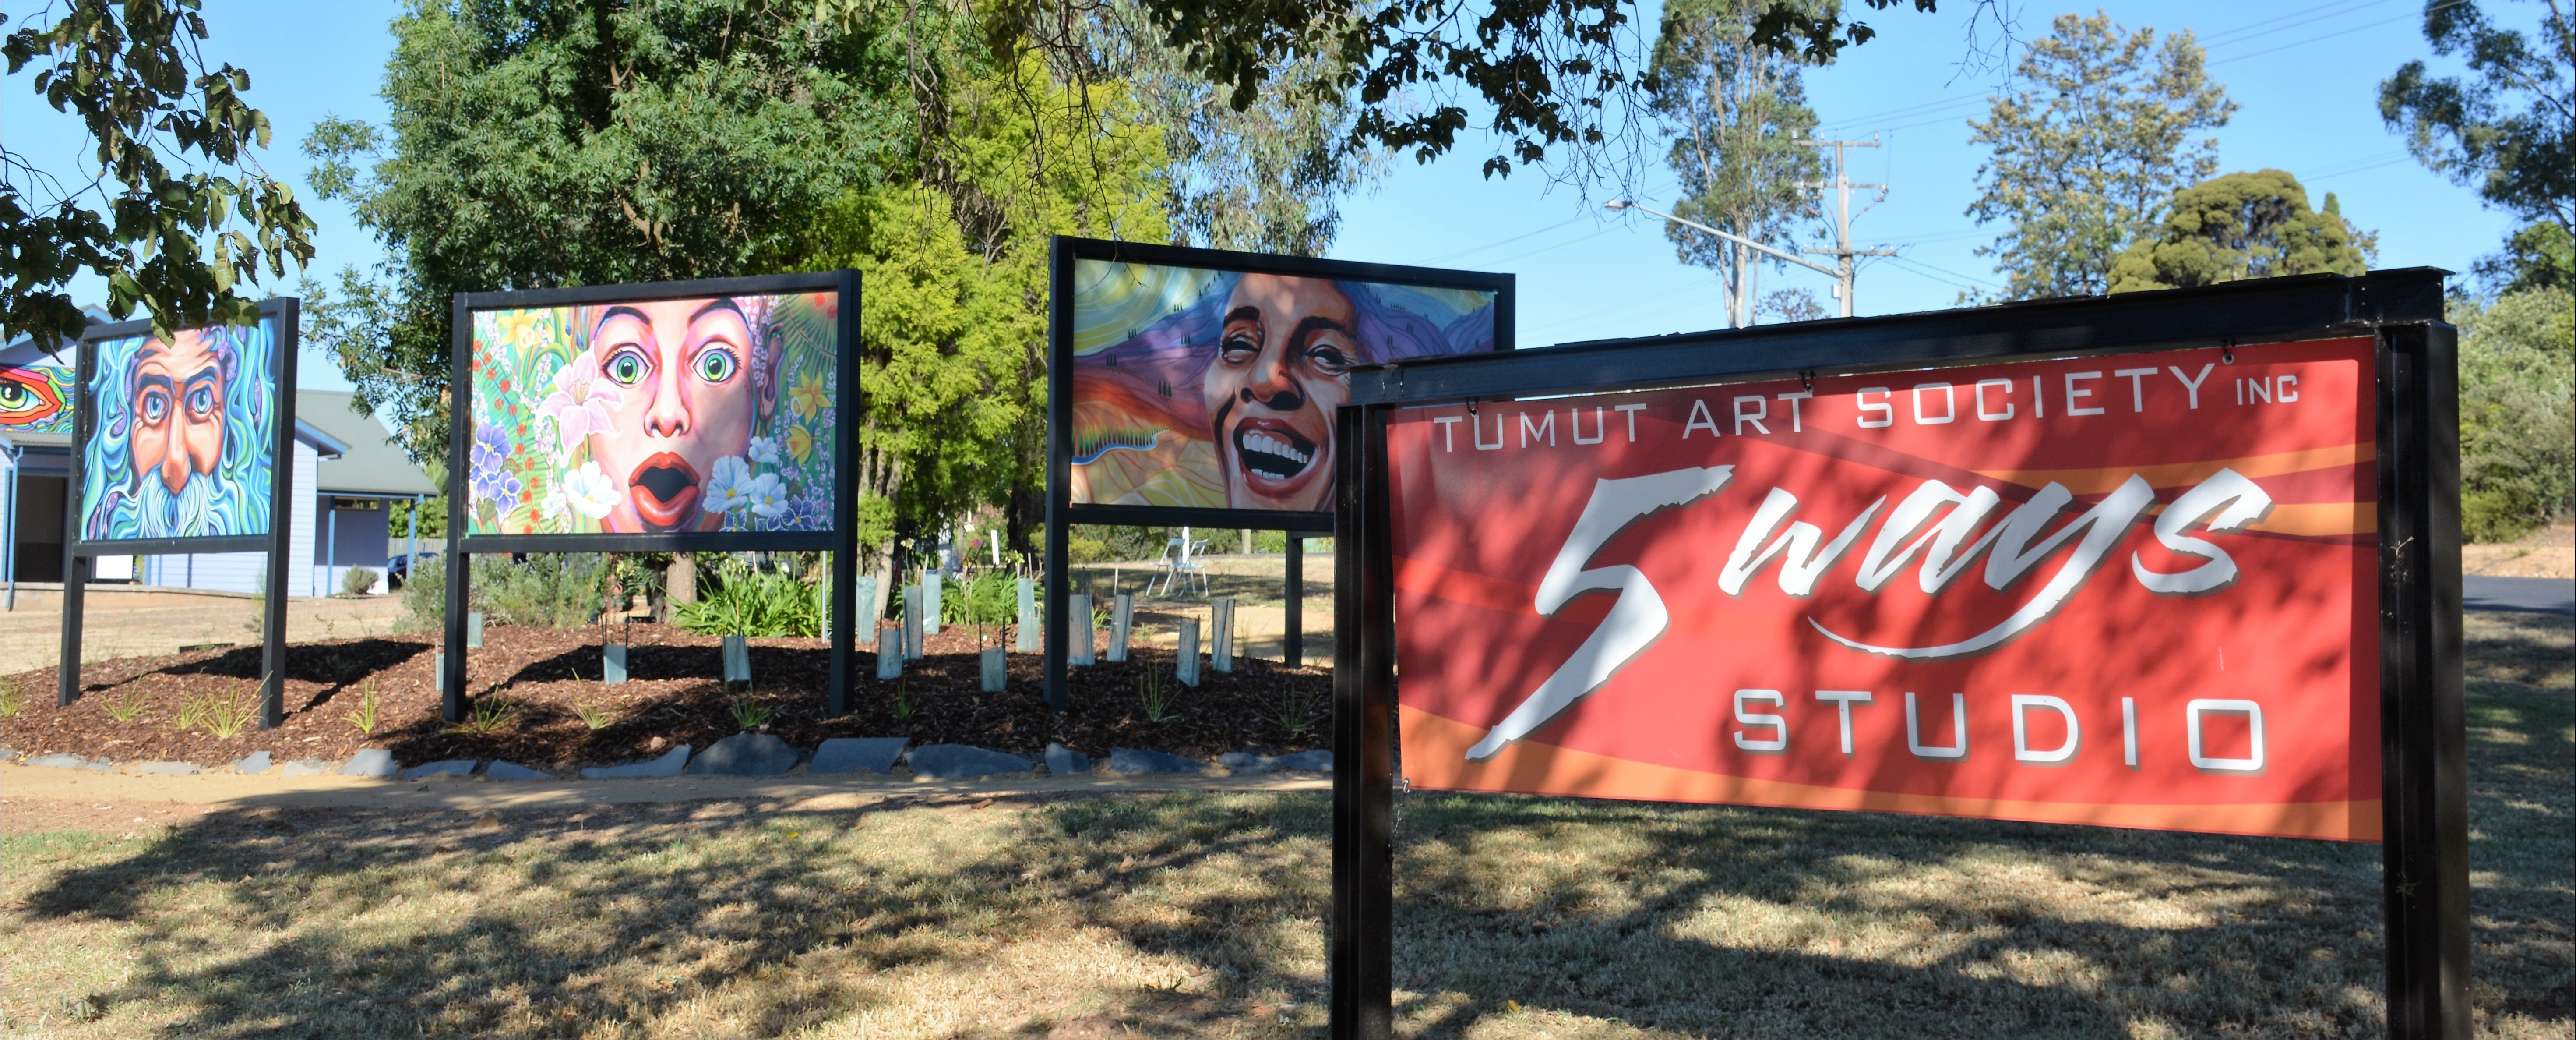 Tumut Art Society 5Ways Gallery - Accommodation Melbourne